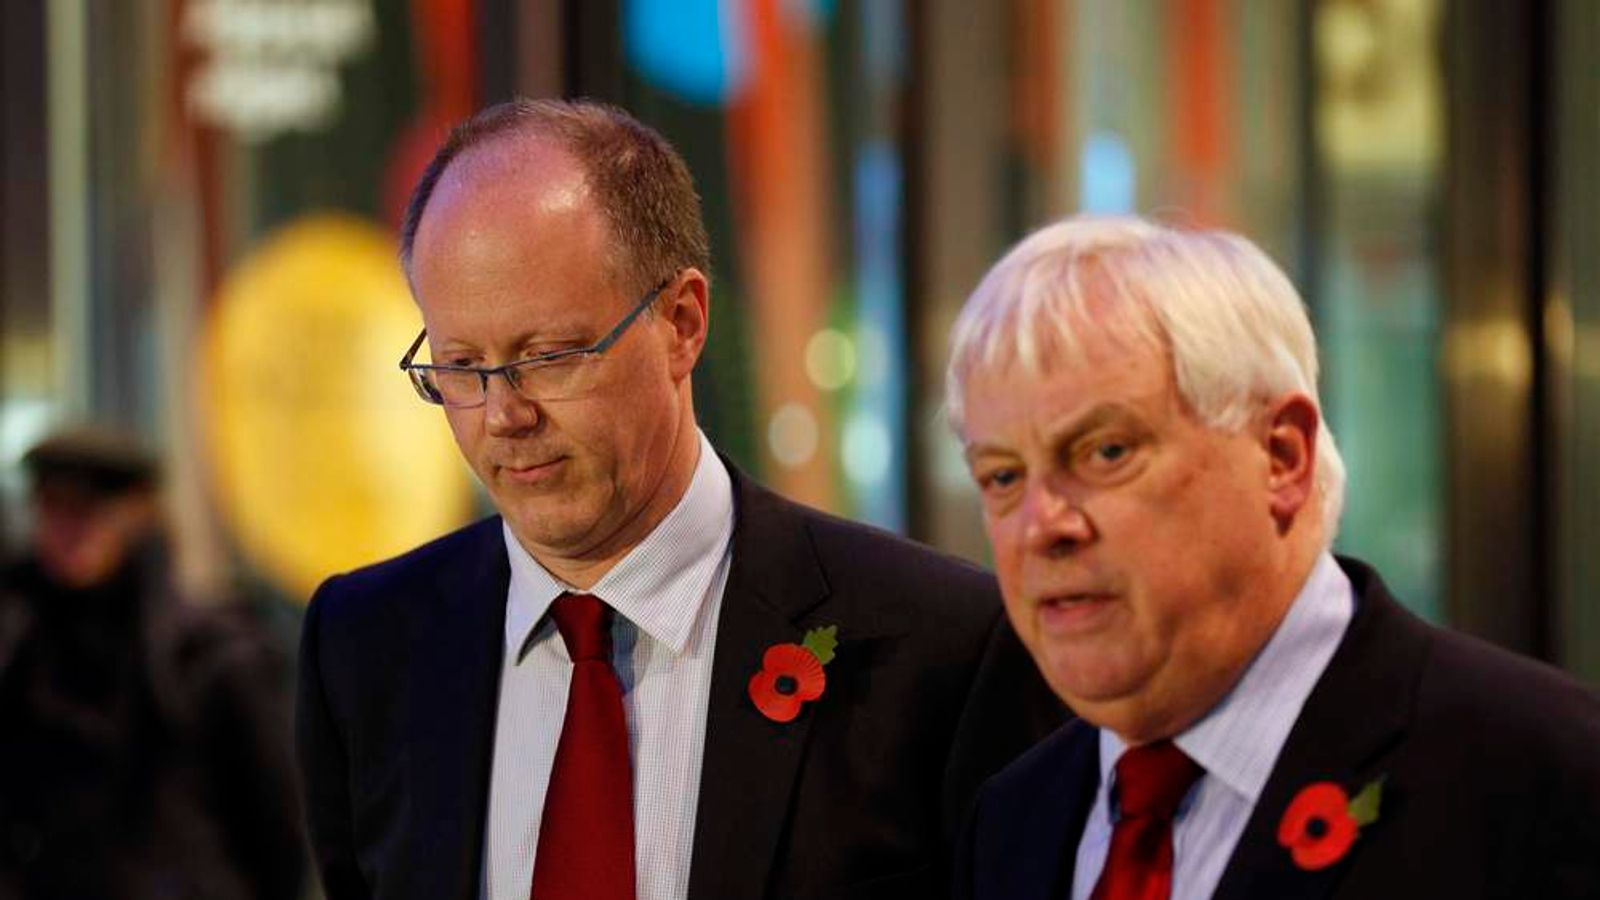 George Entwistle and Lord Patten.